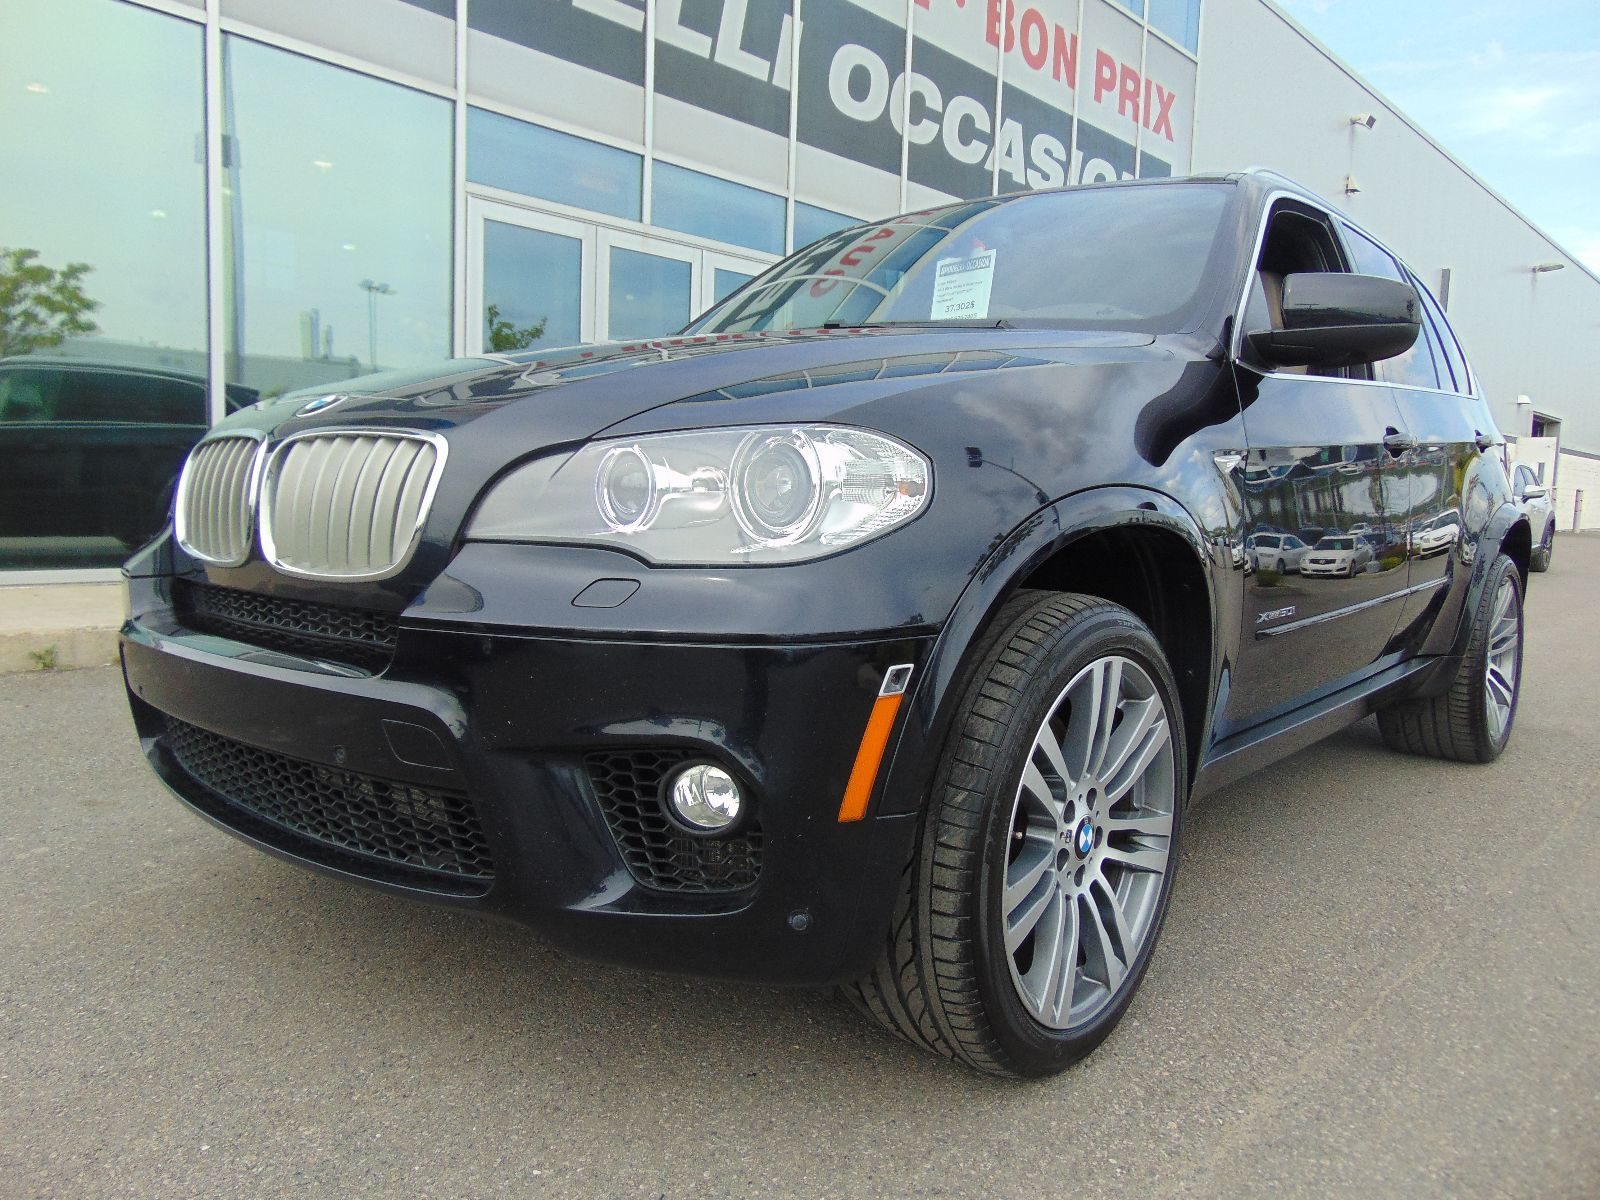 used 2013 bmw x5 deal pending 50i m sport navi in montreal laval and south shore p6928. Black Bedroom Furniture Sets. Home Design Ideas